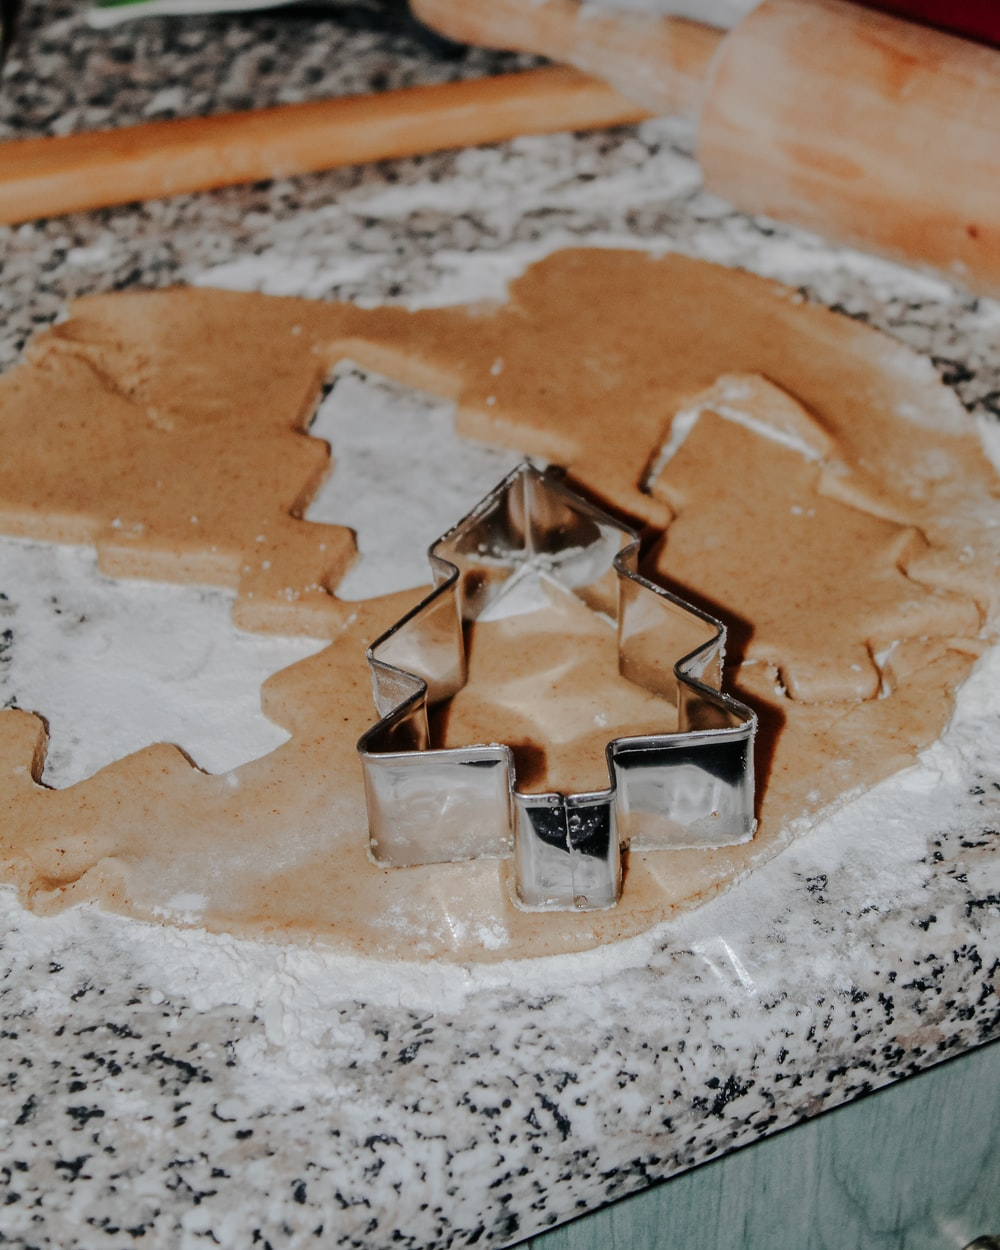 cookie cutter forming Christmas tree